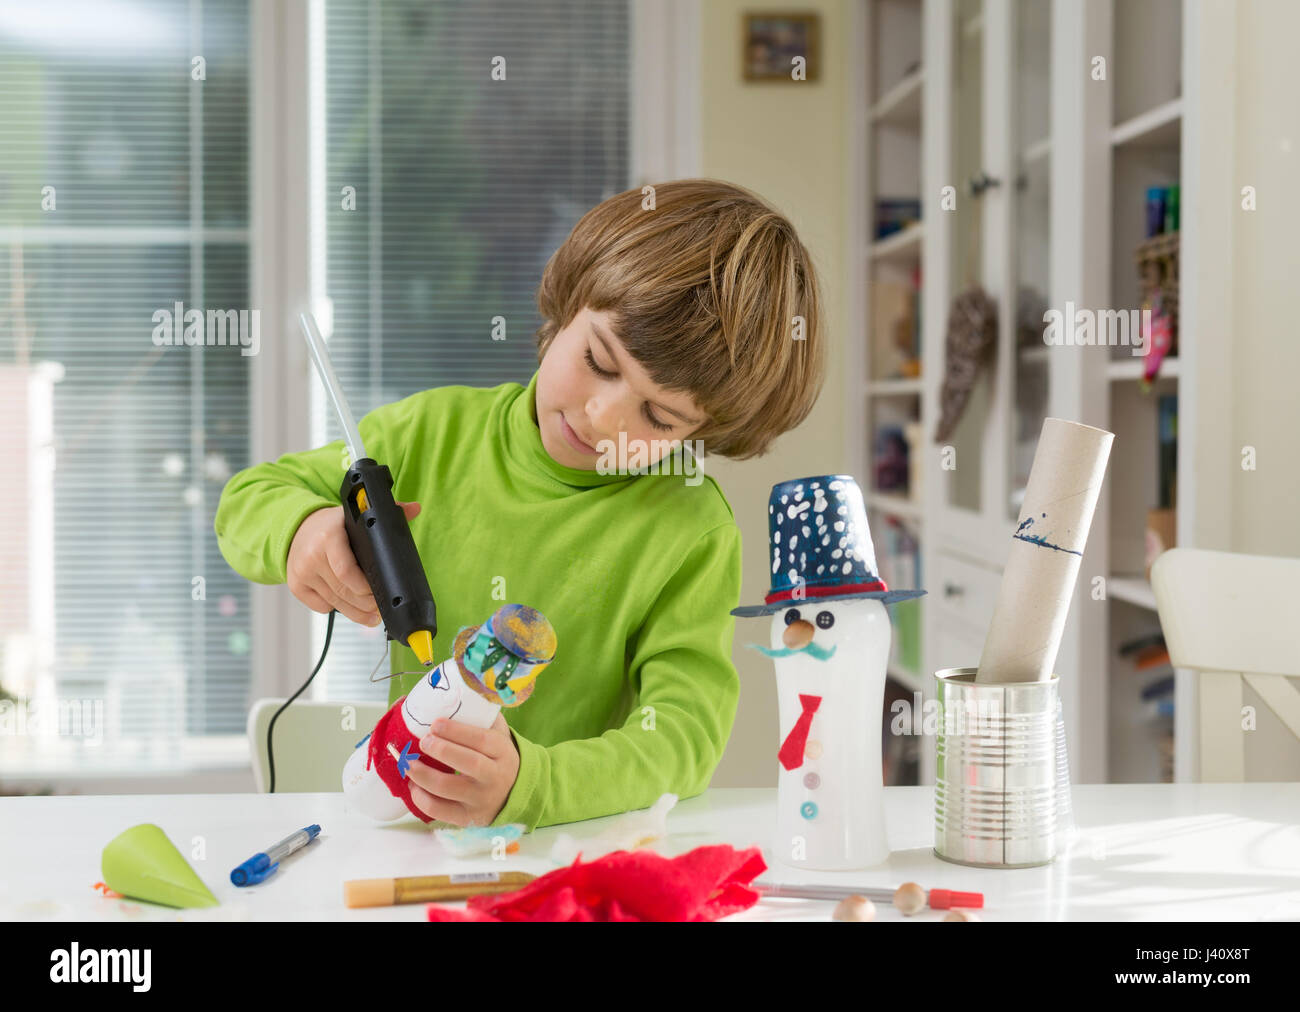 Little boy being creative making do it yourself toys out of yogurt little boy being creative making do it yourself toys out of yogurt bottle and paper using hot melt glue gun supporting creativity learning by doing solutioingenieria Choice Image